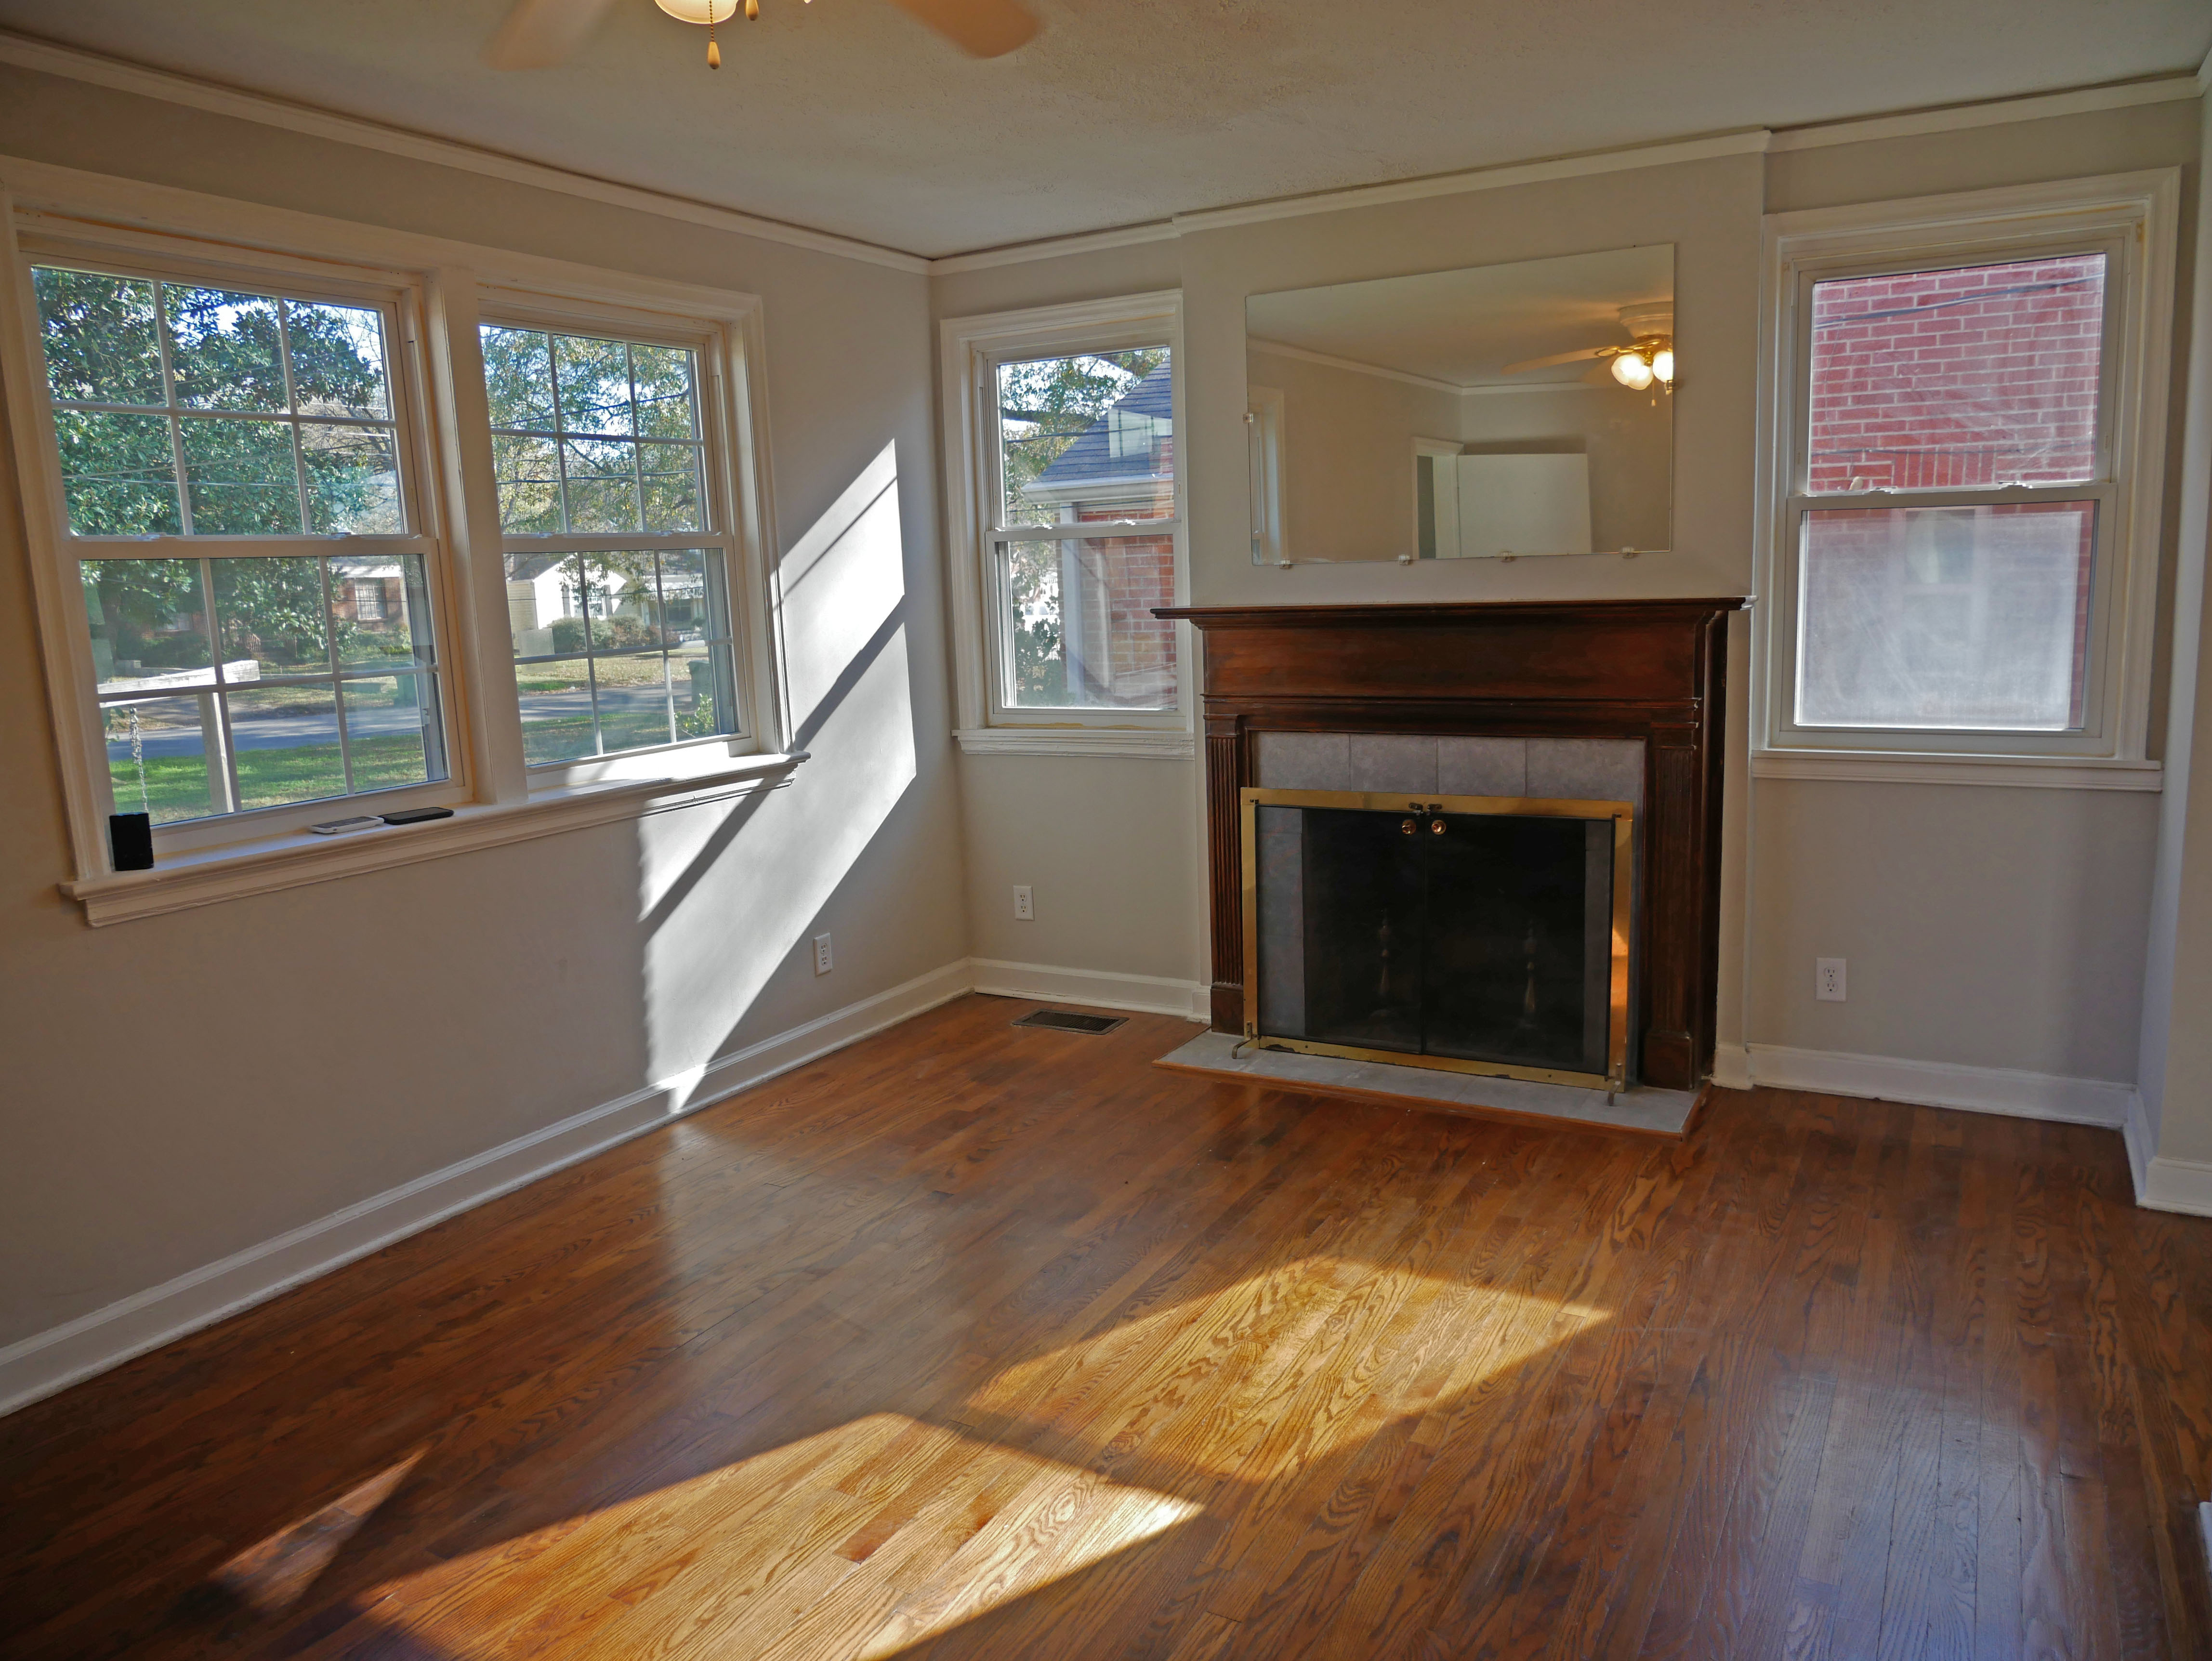 FOR RENT IN MONTGOMERY! 3 BED 2 BATH AT 33 ARDEN ROAD